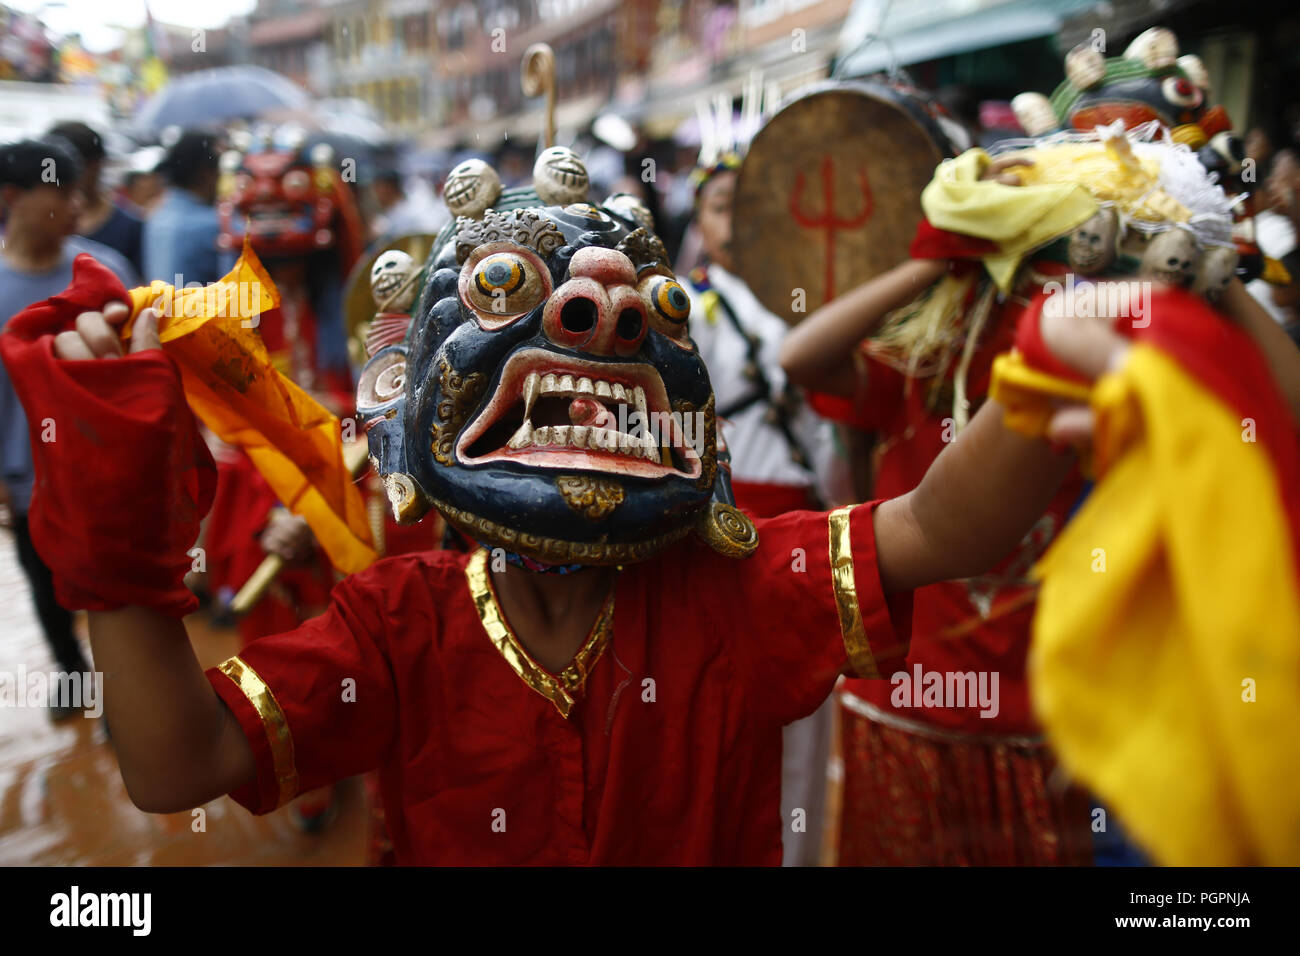 Kathmandu, Nepal. 28th Aug, 2018. A person dressed in various attire take part in a parade during Ropai festival to commemorate the departed at Boudhanath Stupa in Kathmandu, Nepal on Tuesday, August 28, 2018. Credit: Skanda Gautam/ZUMA Wire/Alamy Live News - Stock Image